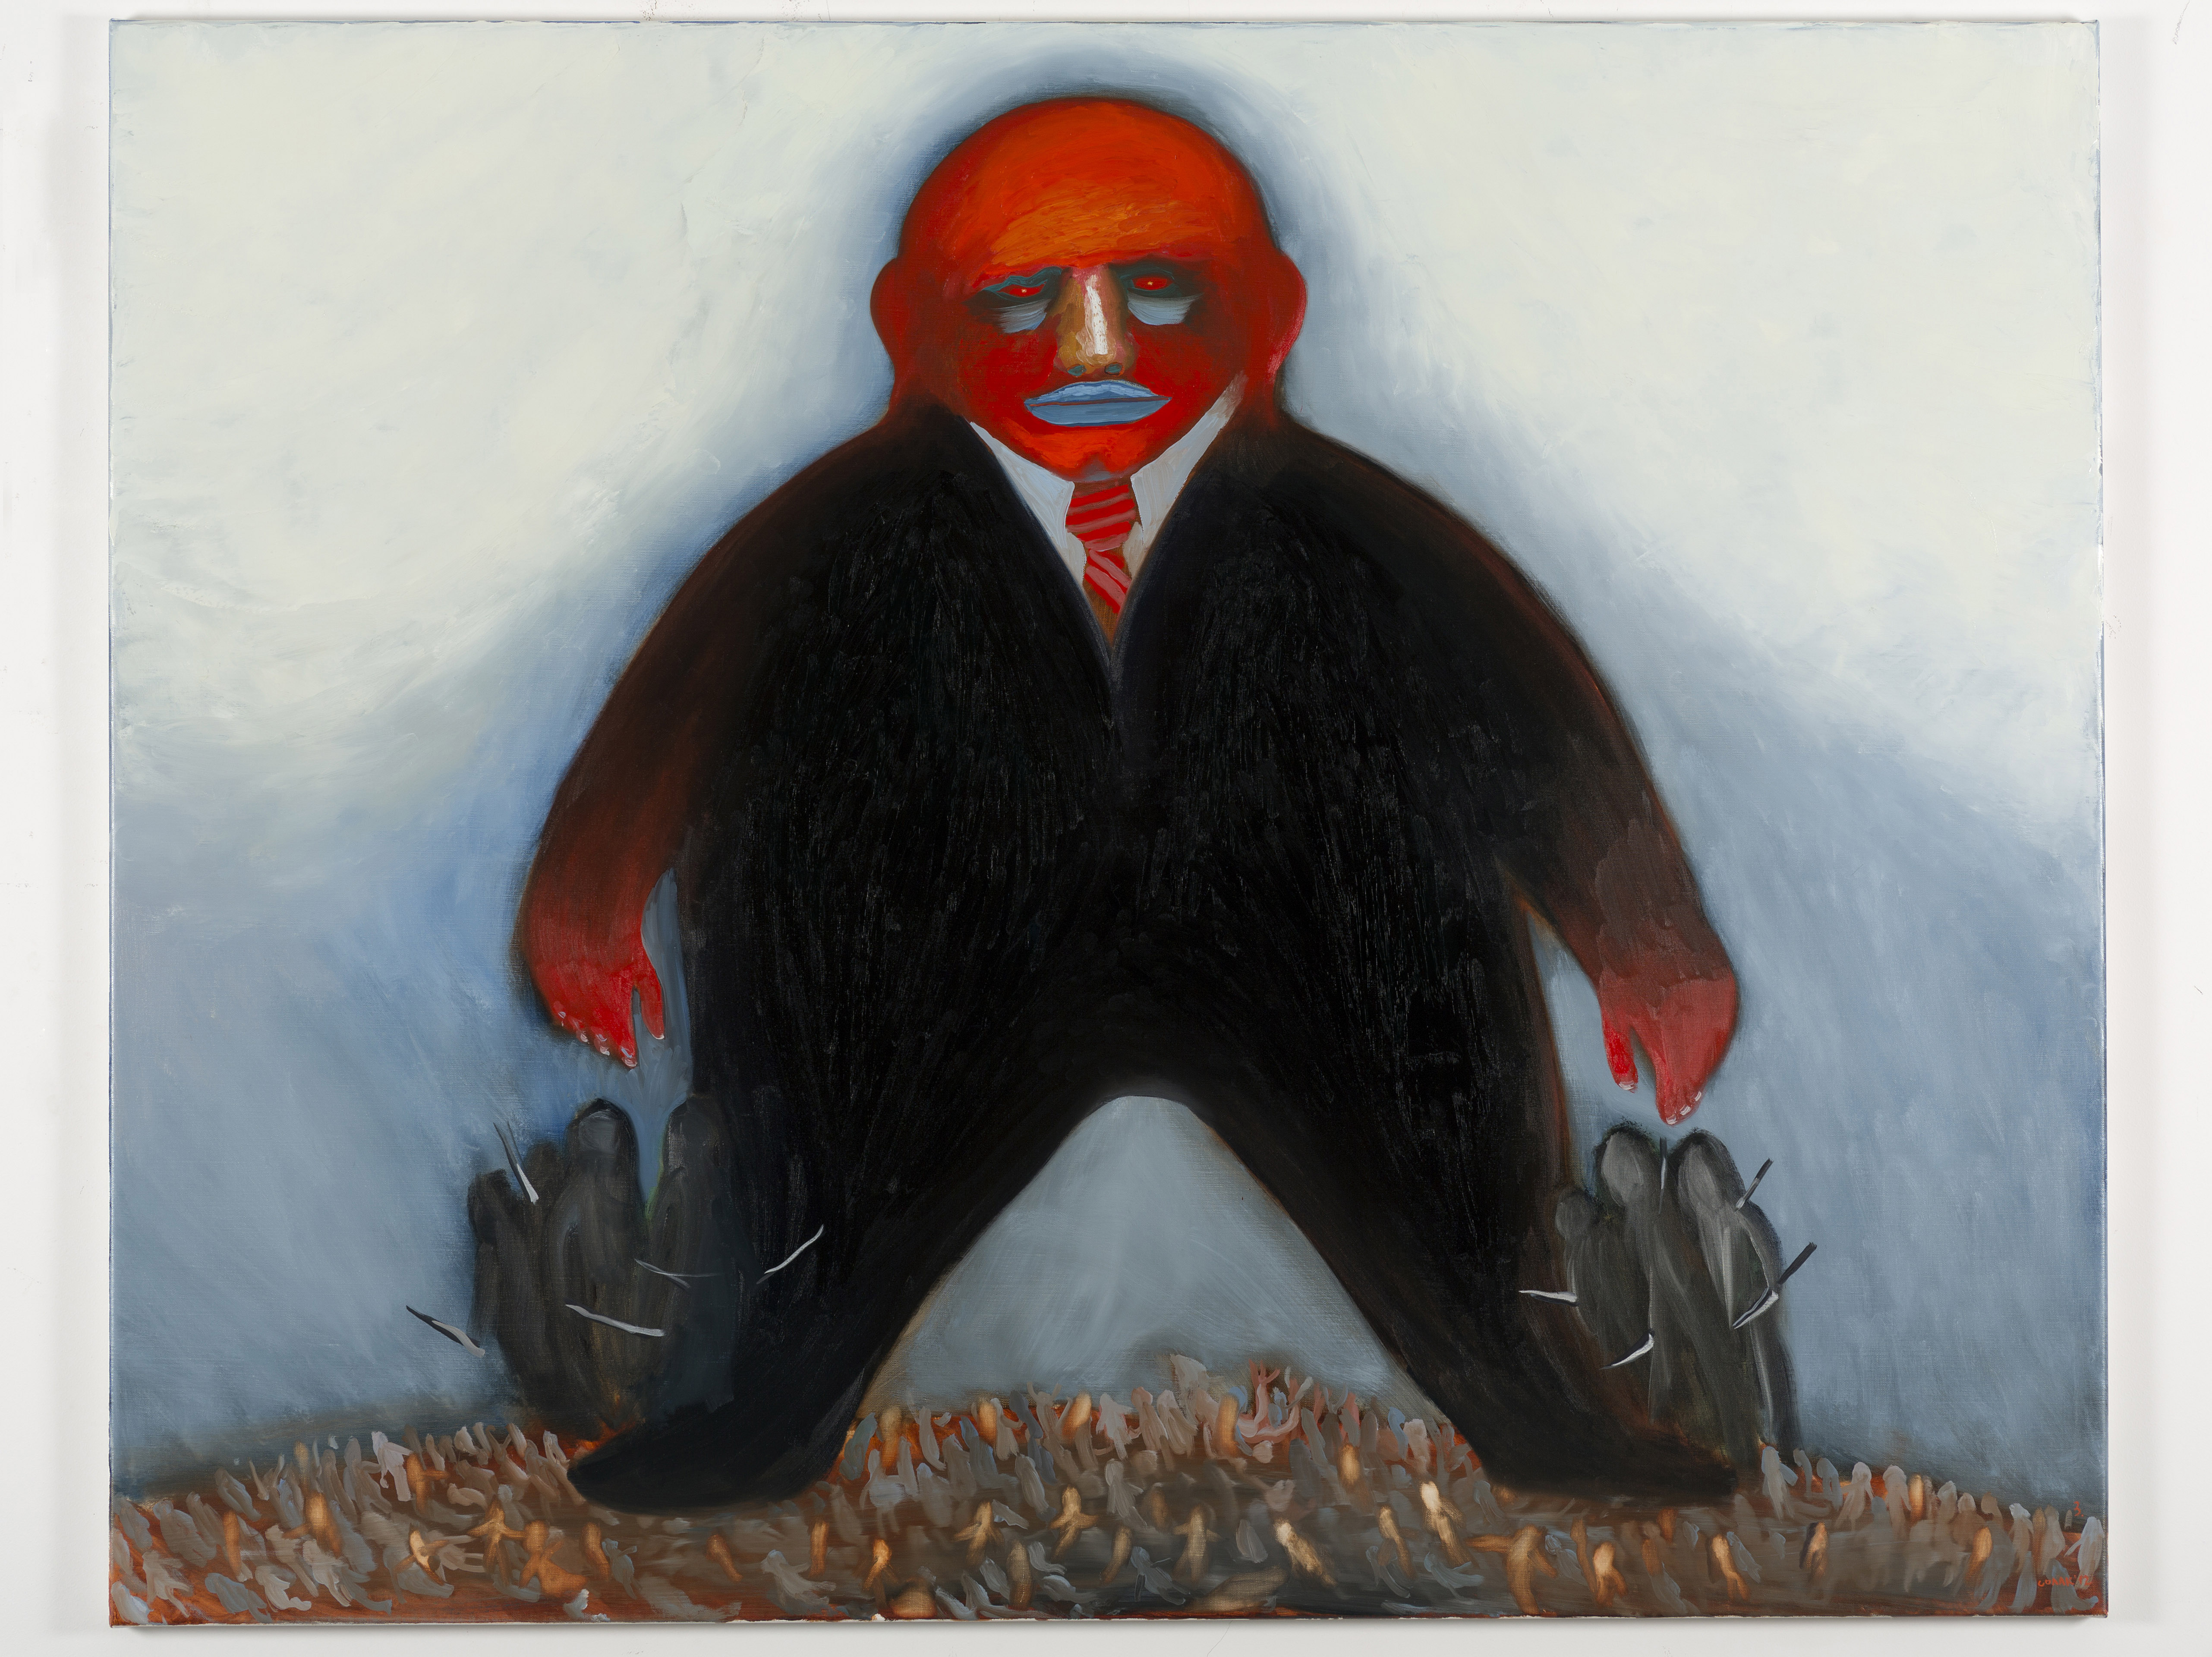 Nedko Solakov Paintings with No Texts #3 (A Romantic Tyran in a State of Democracy) 2012